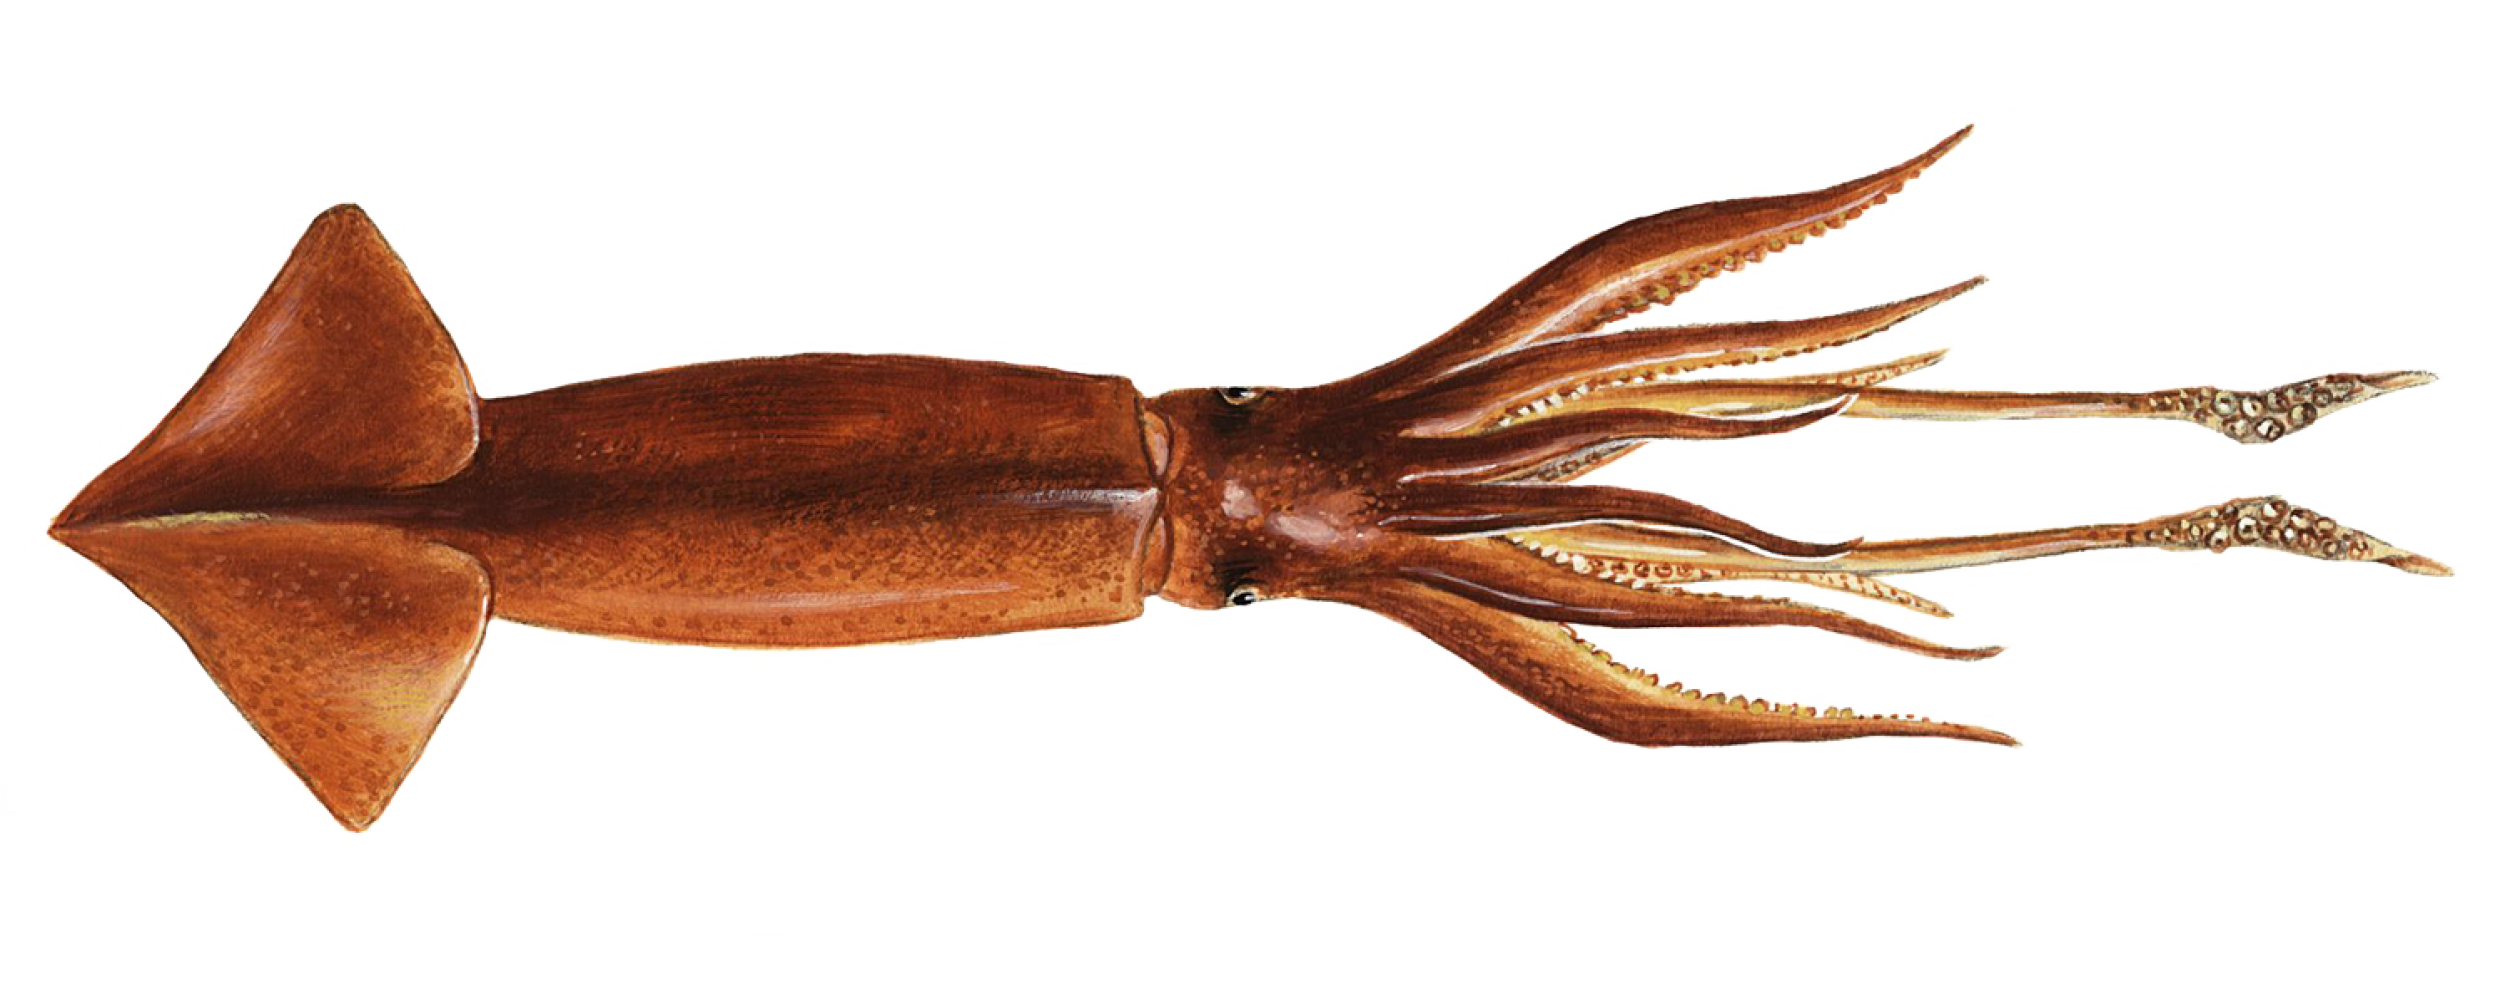 Illex Squid from FIFCA